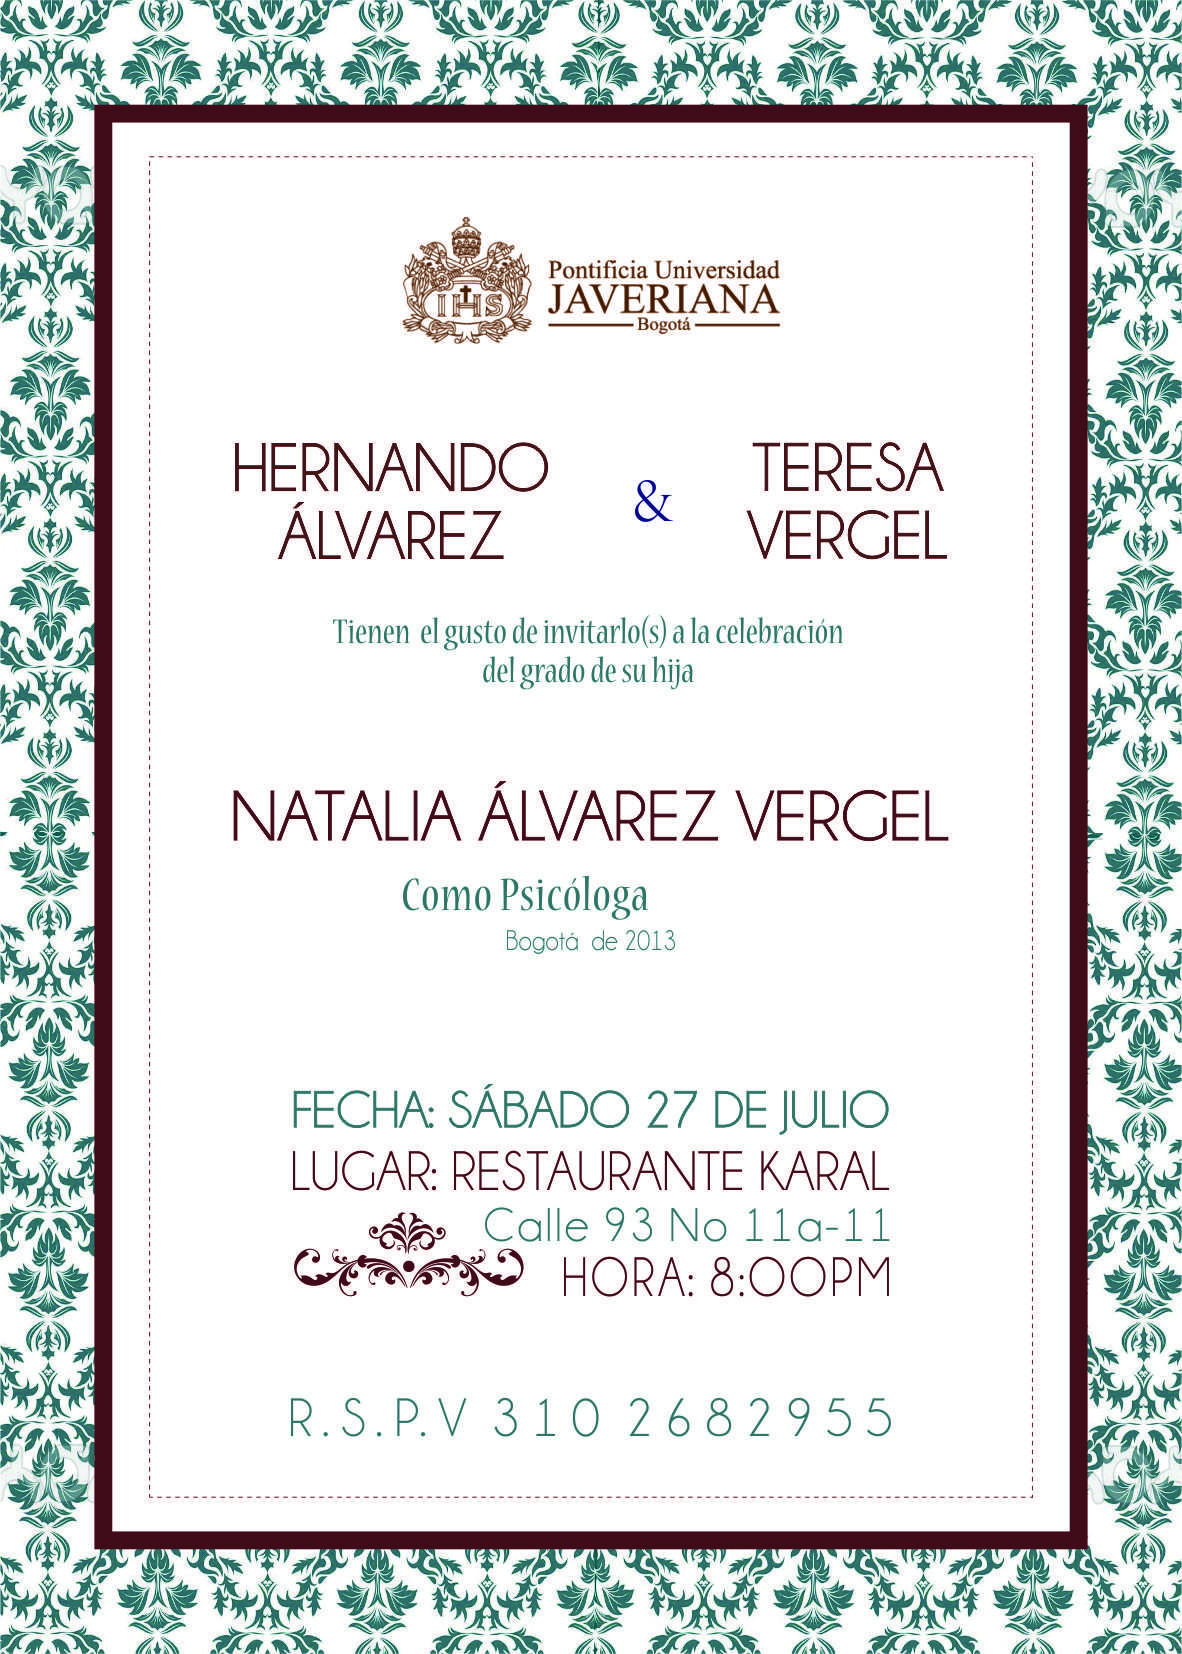 Invitacion Grado Universidad Javeriana Invitaciones De